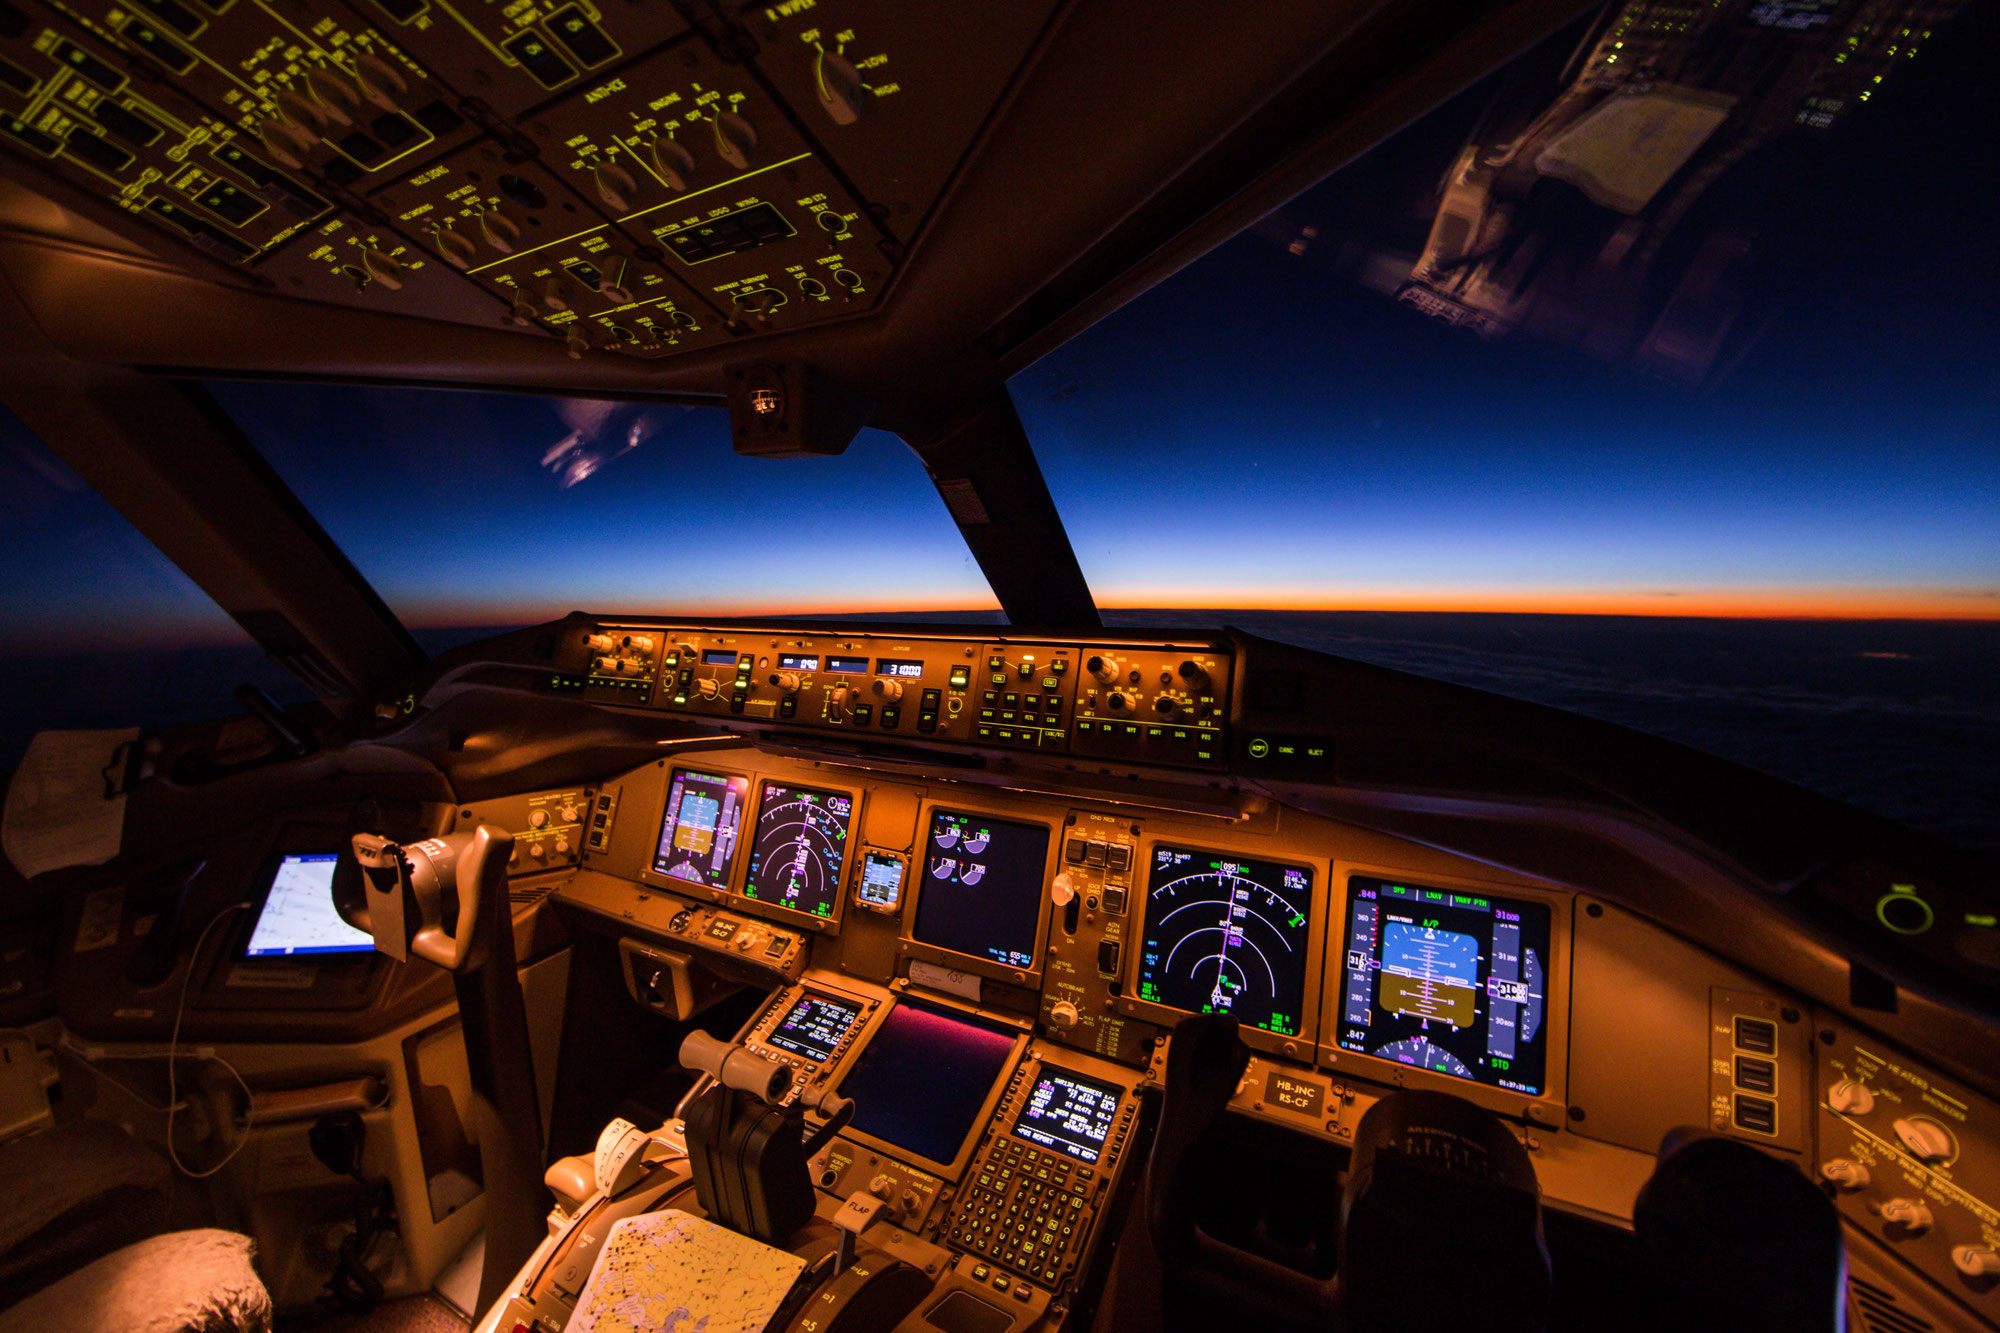 Stories Beyond The Clouds An Airline Pilot S Journey